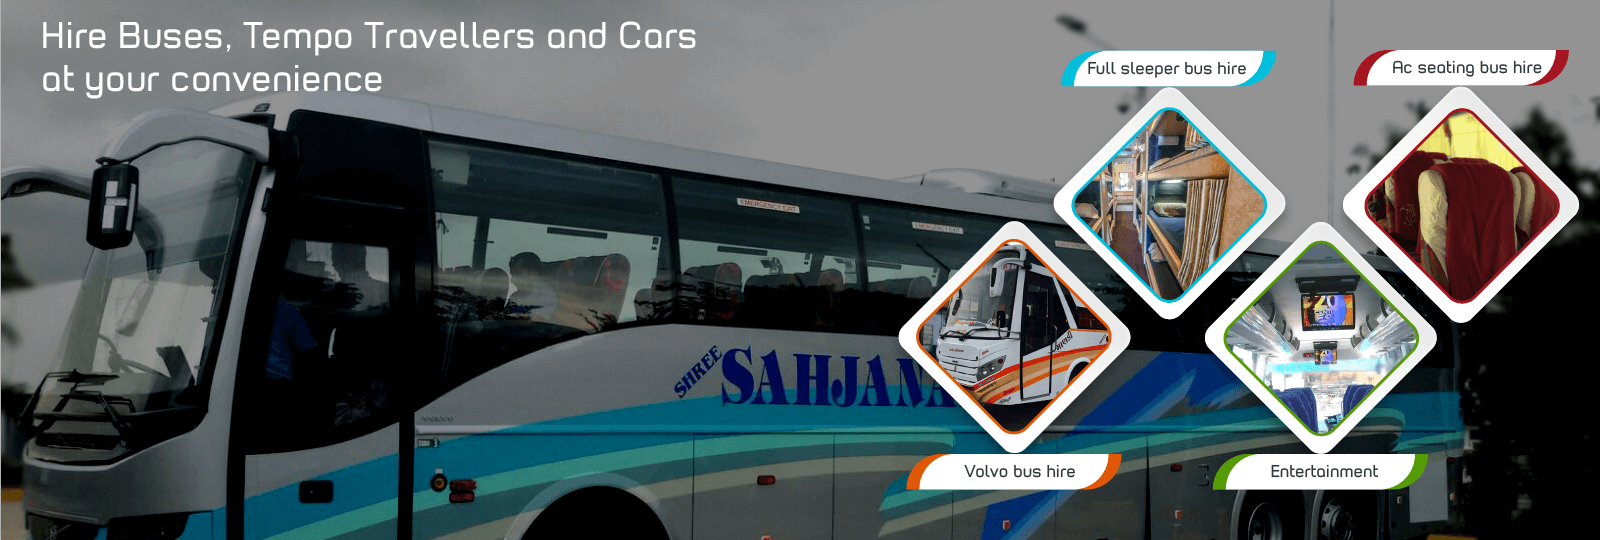 Bus Hire in ahmedabad